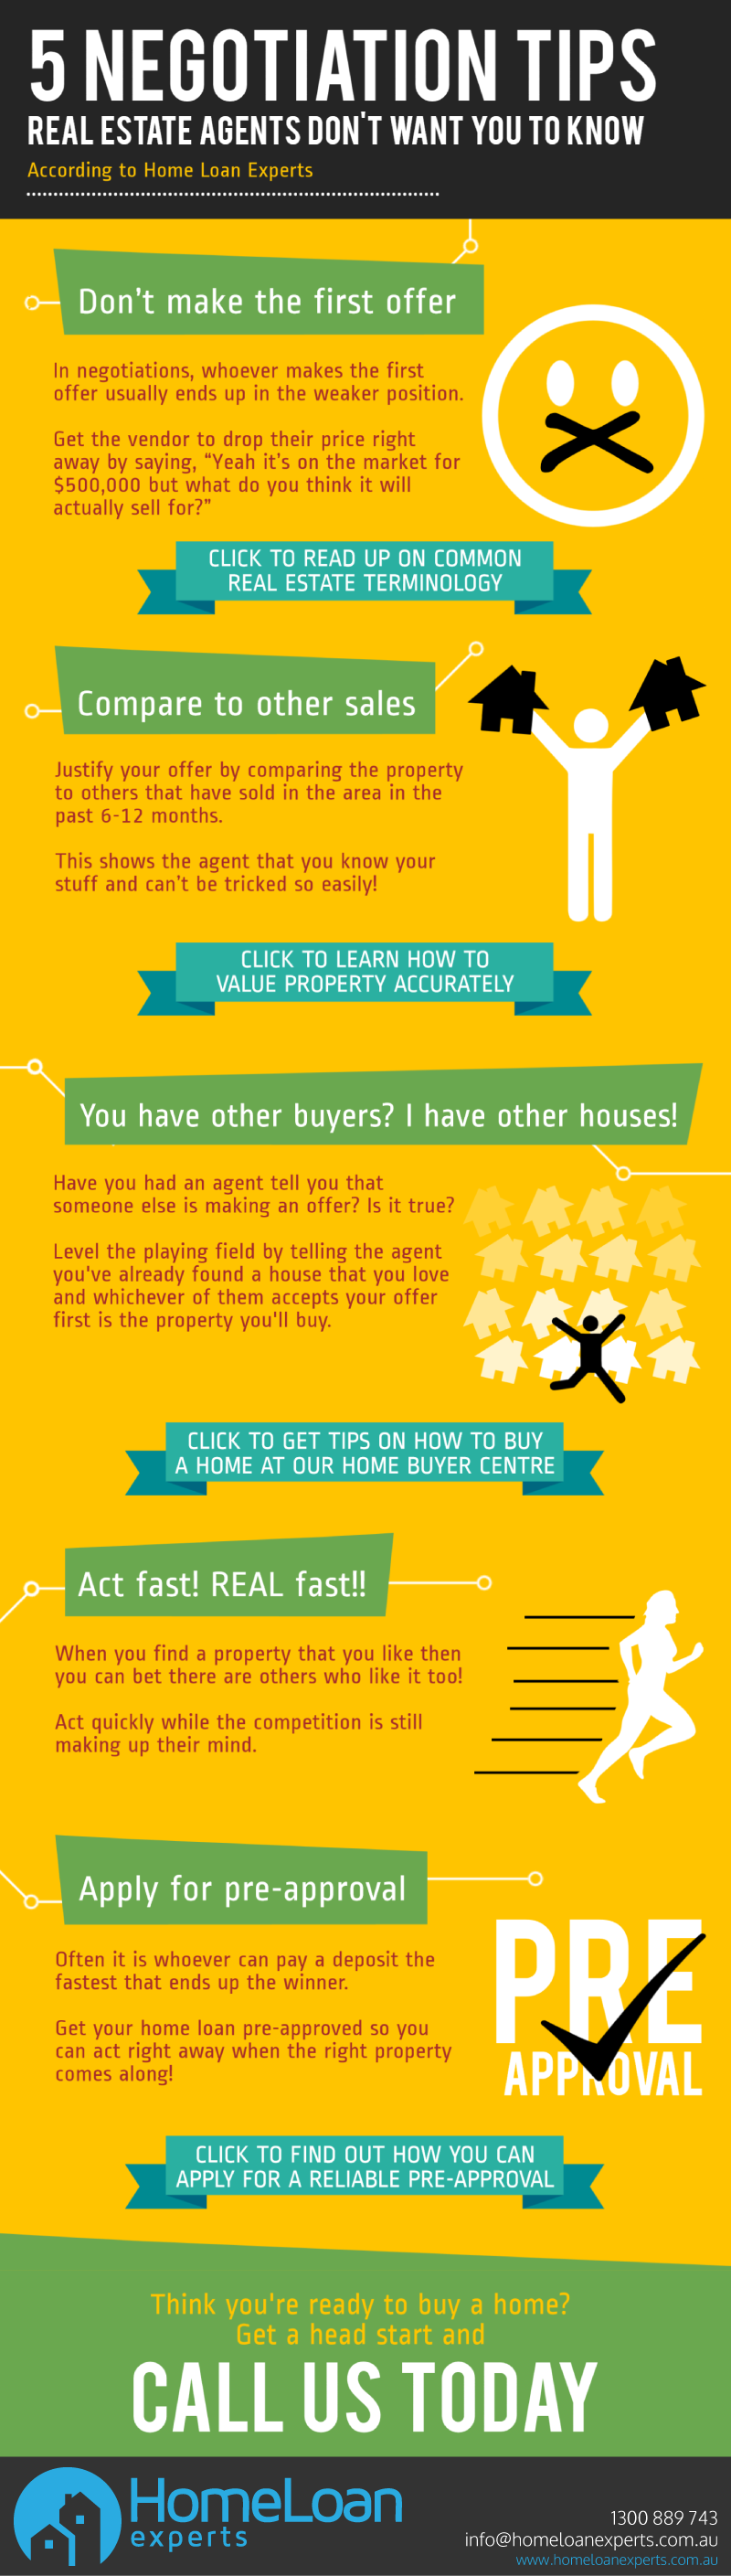 5 Negotiation Tips Real Estate Agents Don't Want You To Know infographic